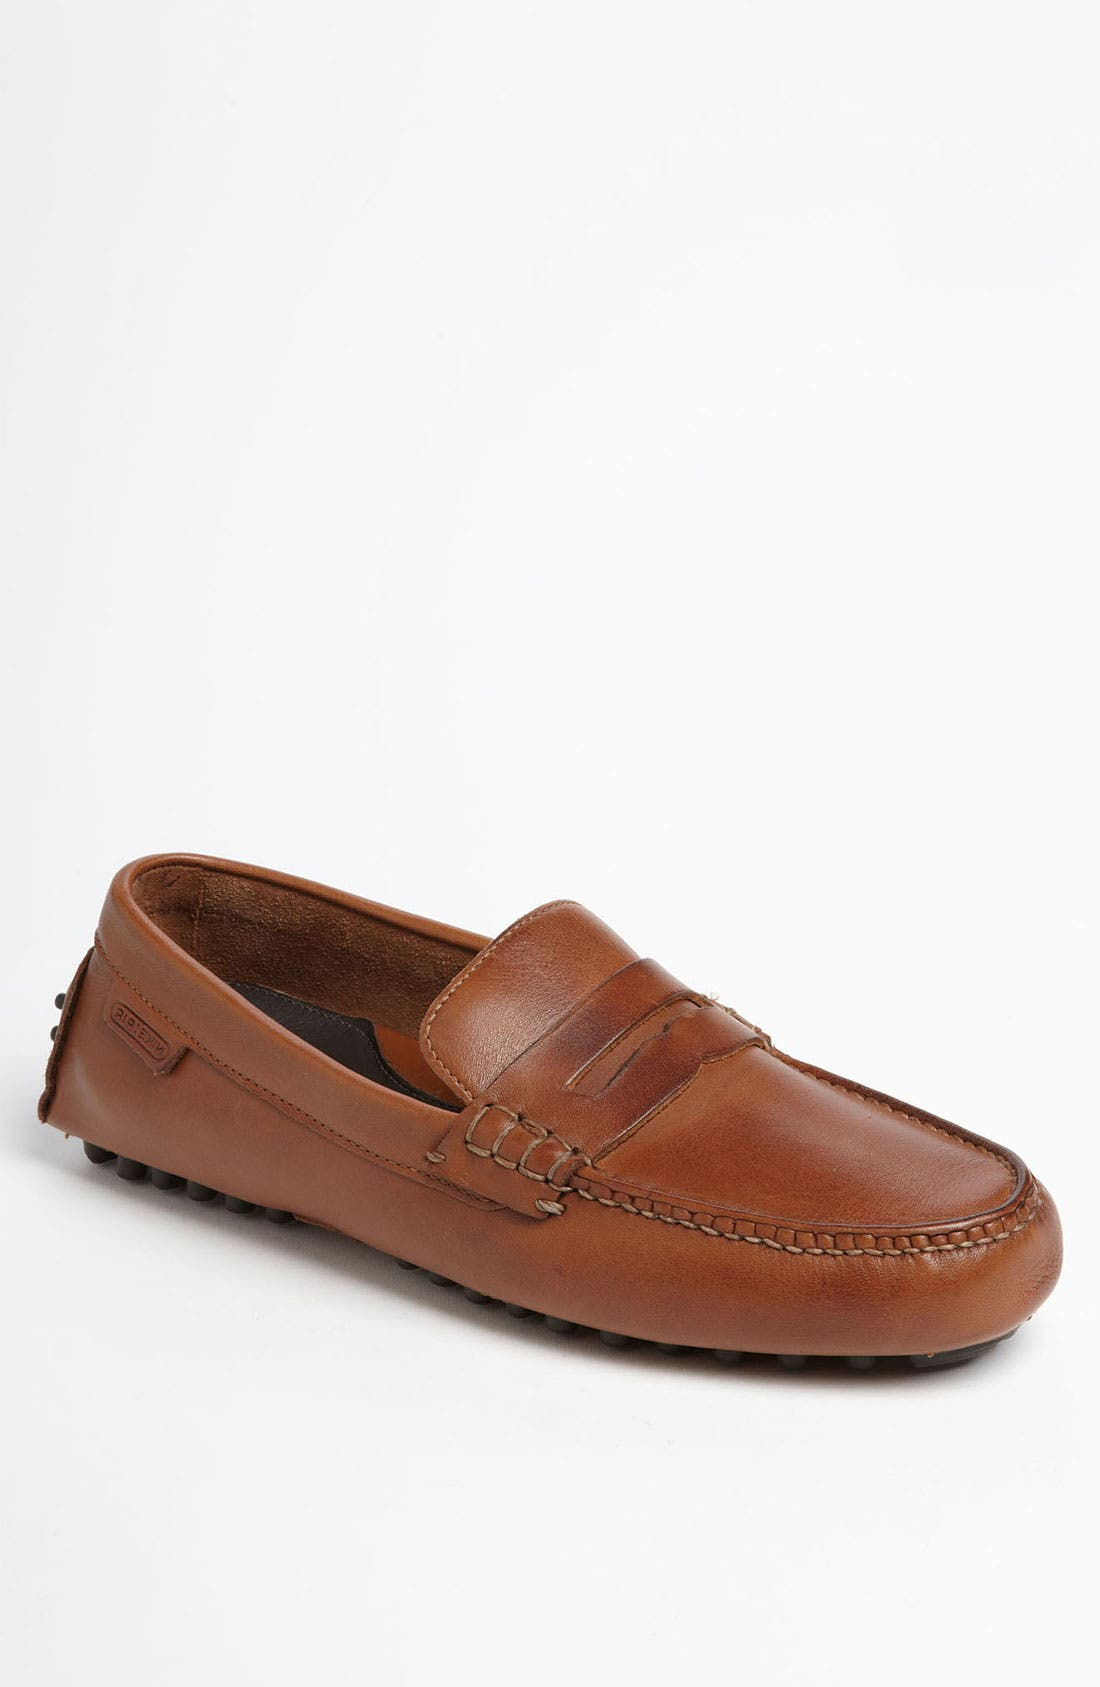 Main Image - Cole Haan 'Air Grant' Driving Loafer (Men)